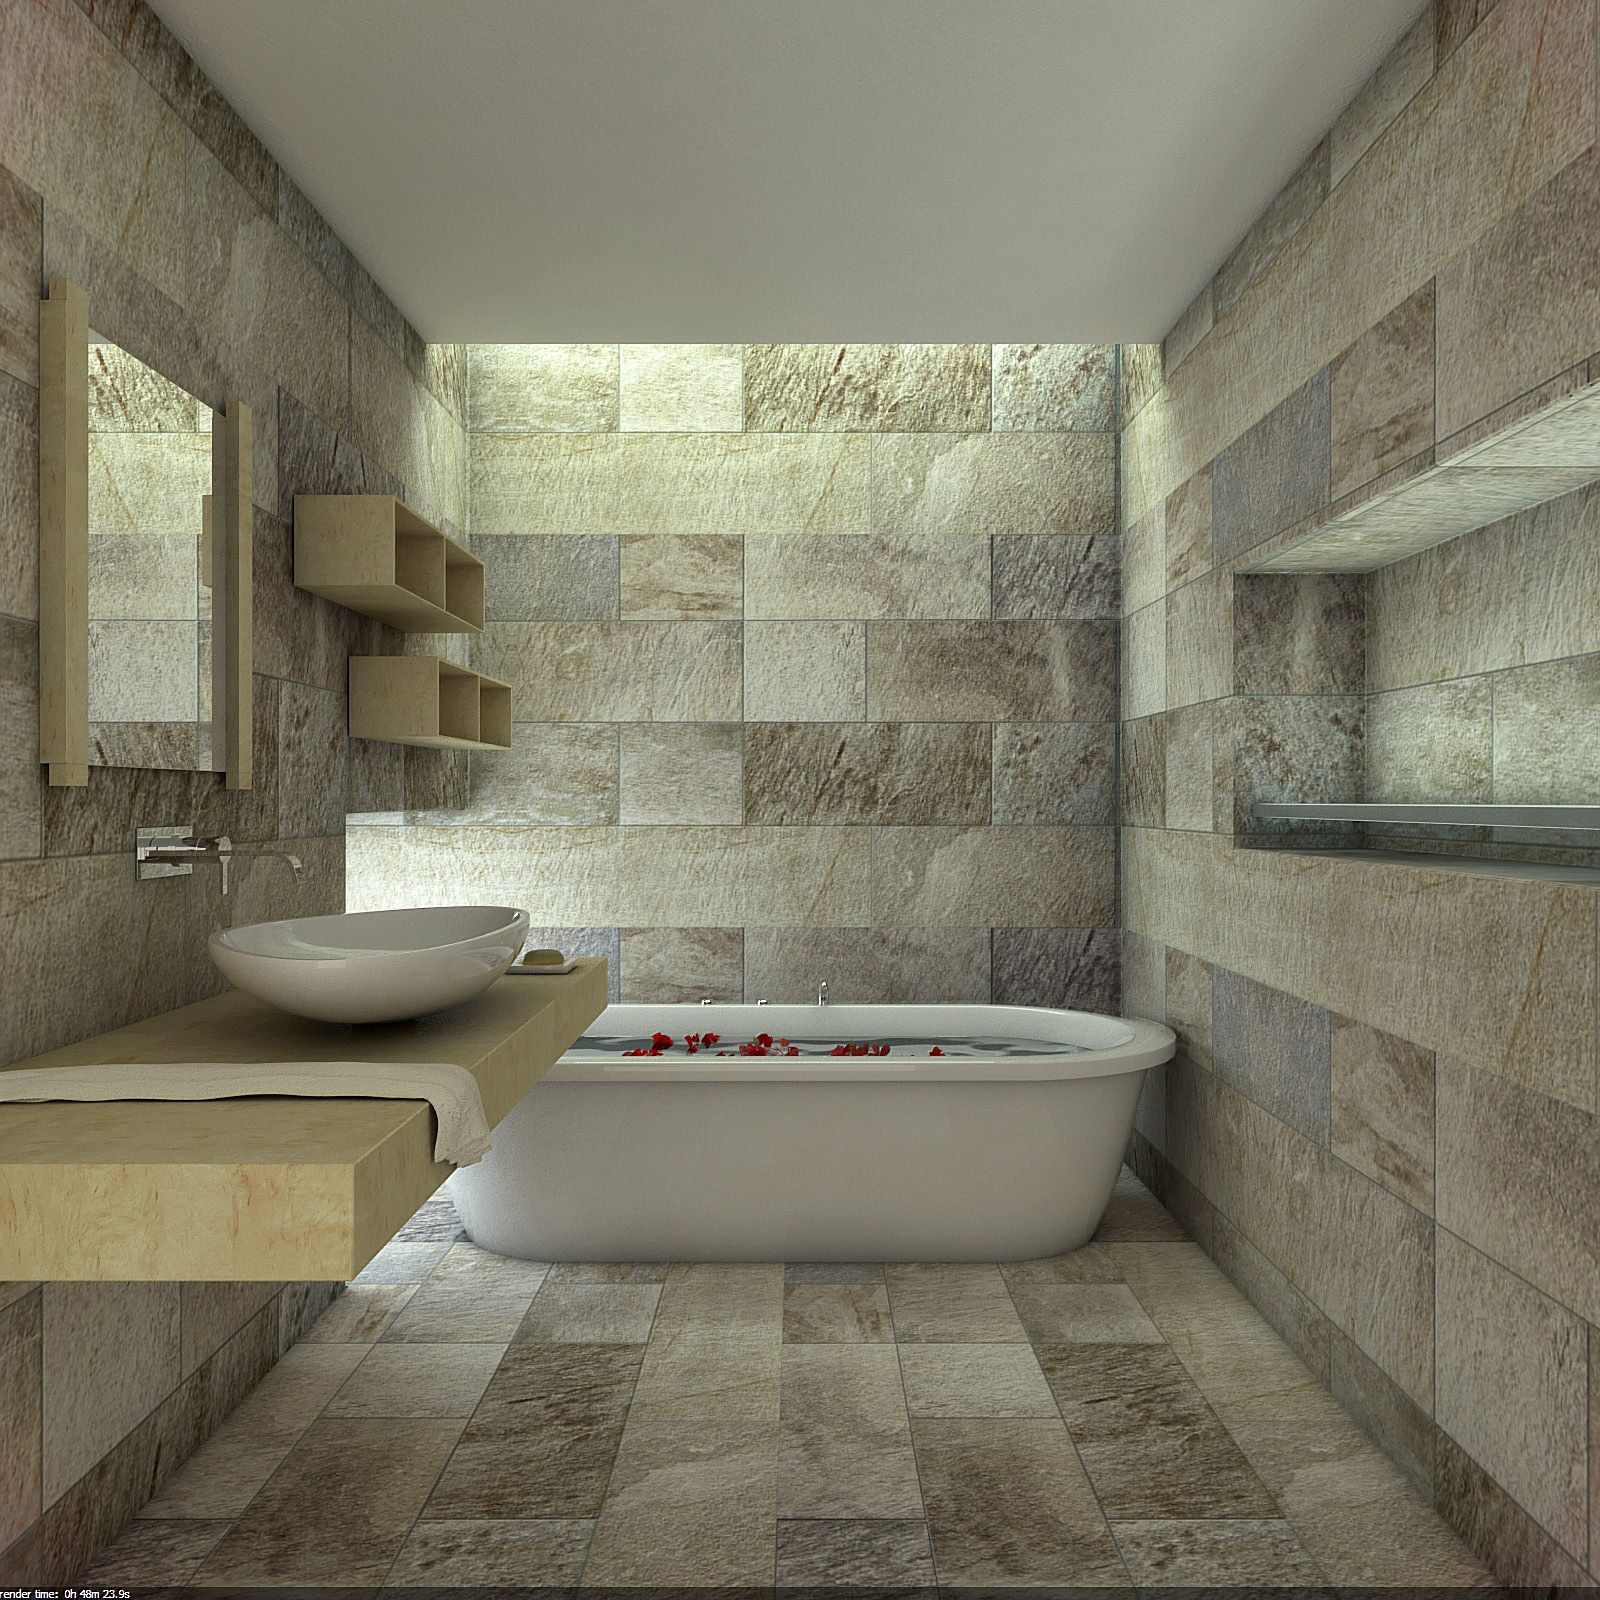 bathroom stone bathroom 007 stone bathroom design ideas to create a nature inspired bathroom bathroom stone tile stone bathroom stone bathroom sink - Bathroom Tile Ideas Natural Stone